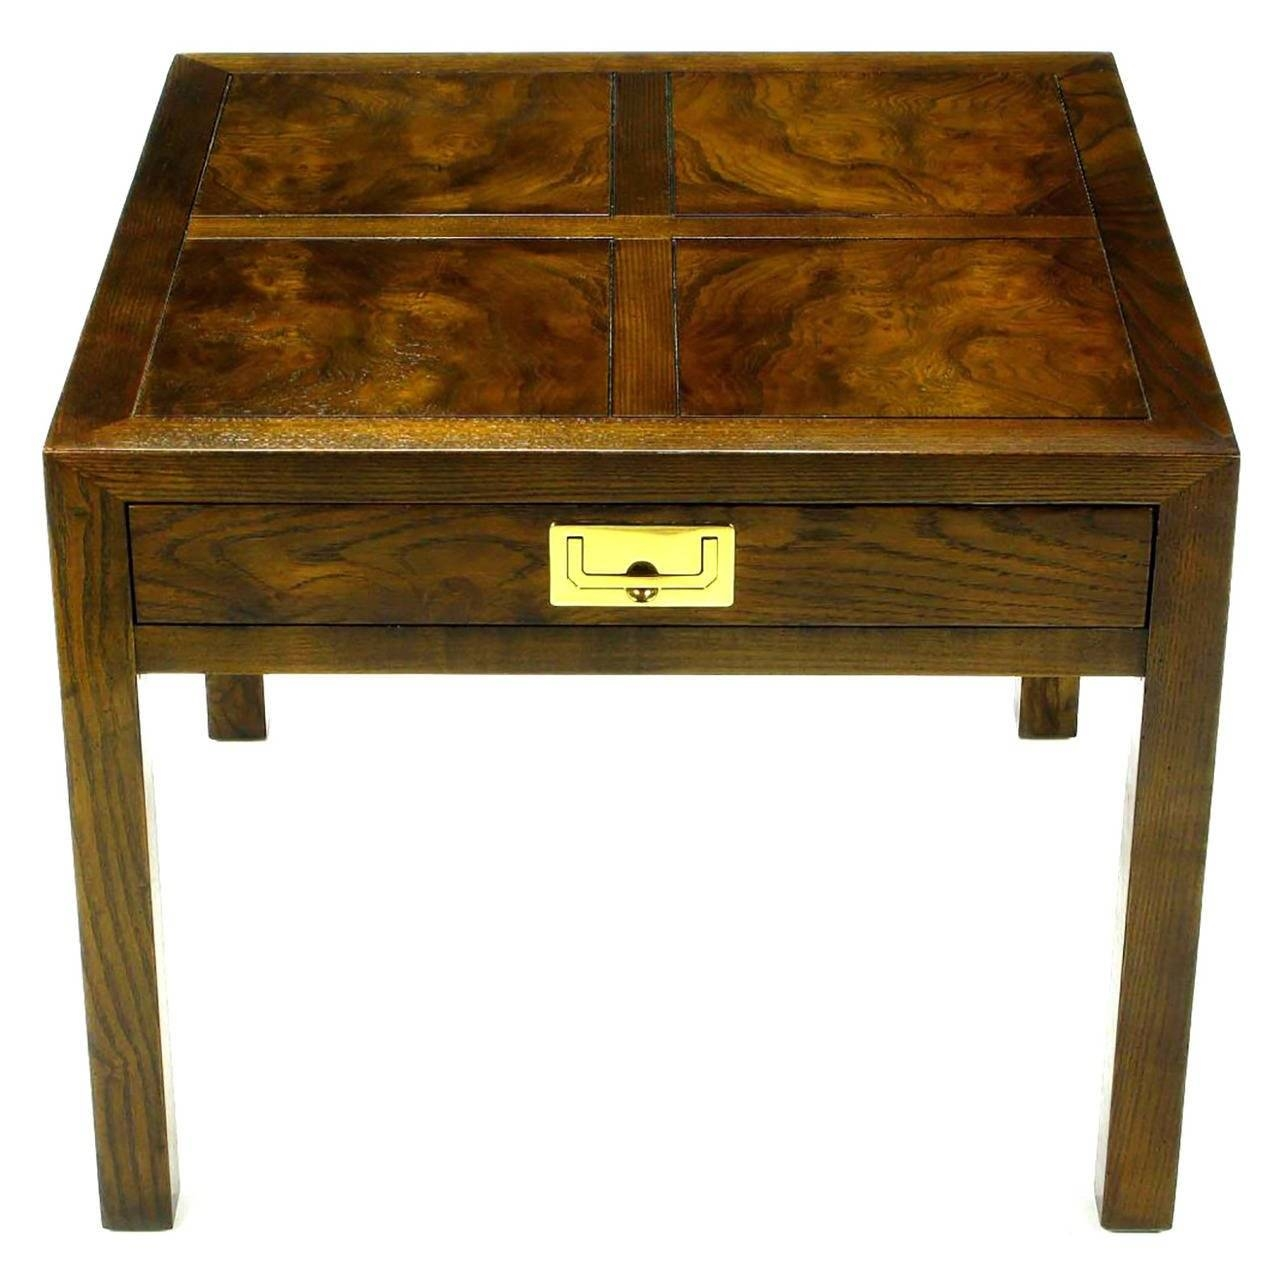 Henredon Parquetry Top Burl Walnut Campaign End Table At 1Stdibs regarding Campaign Coffee Tables (Image 13 of 30)